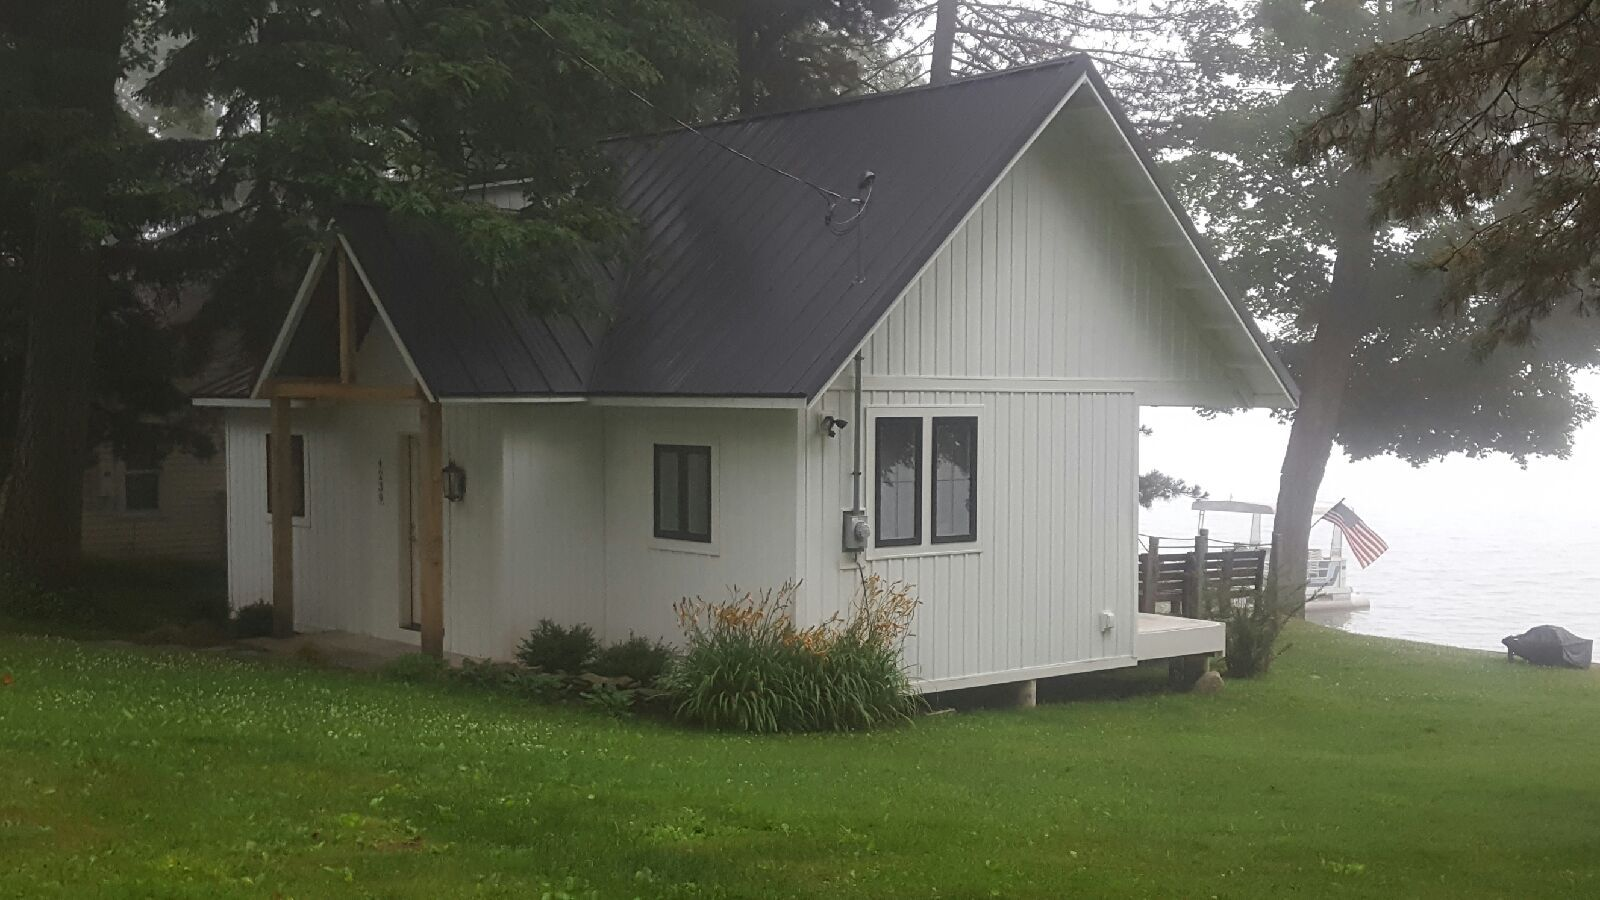 New metal roof on a Silver Lake cottage in Perry, NY.